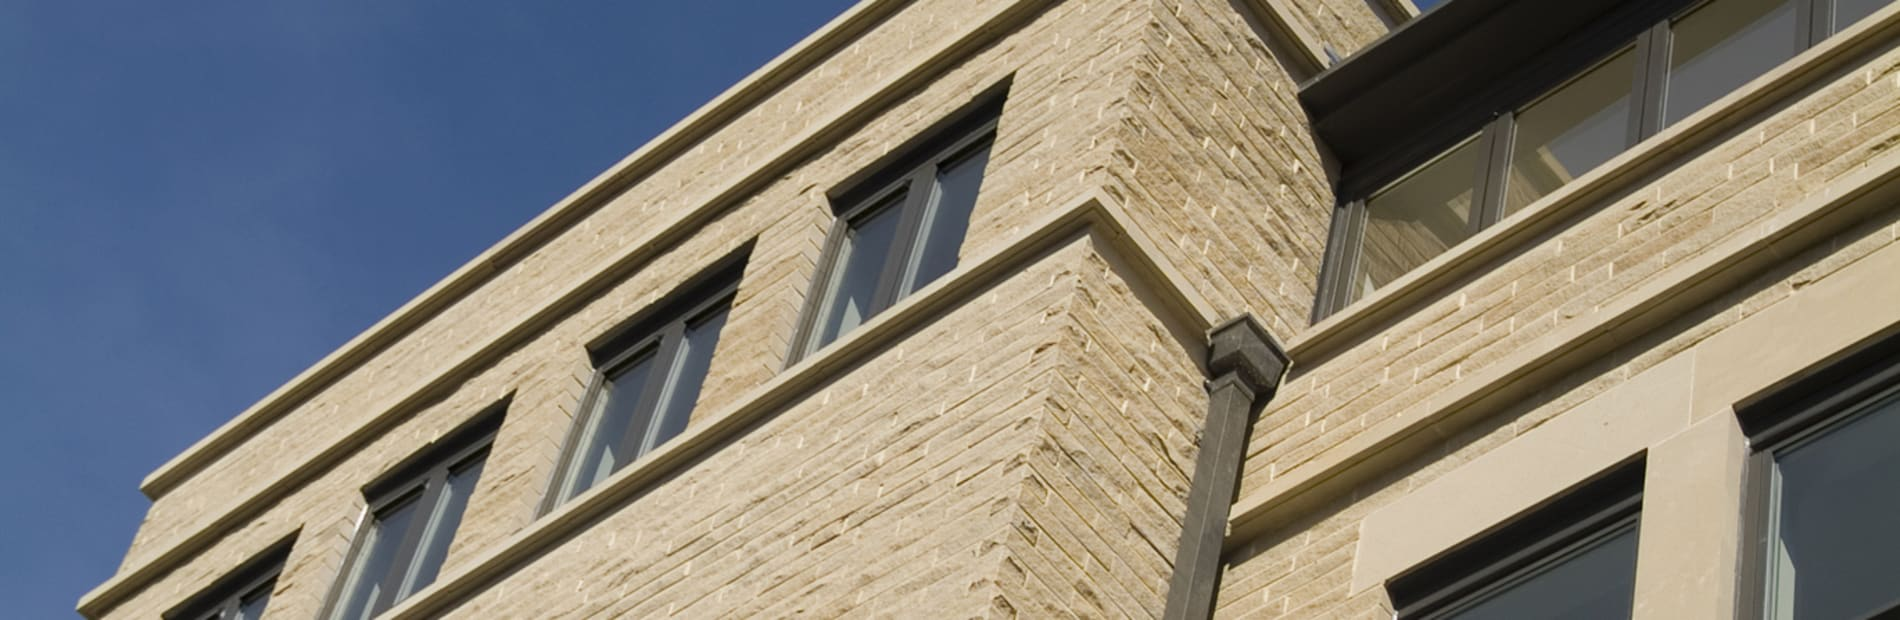 Split face sandstone walling